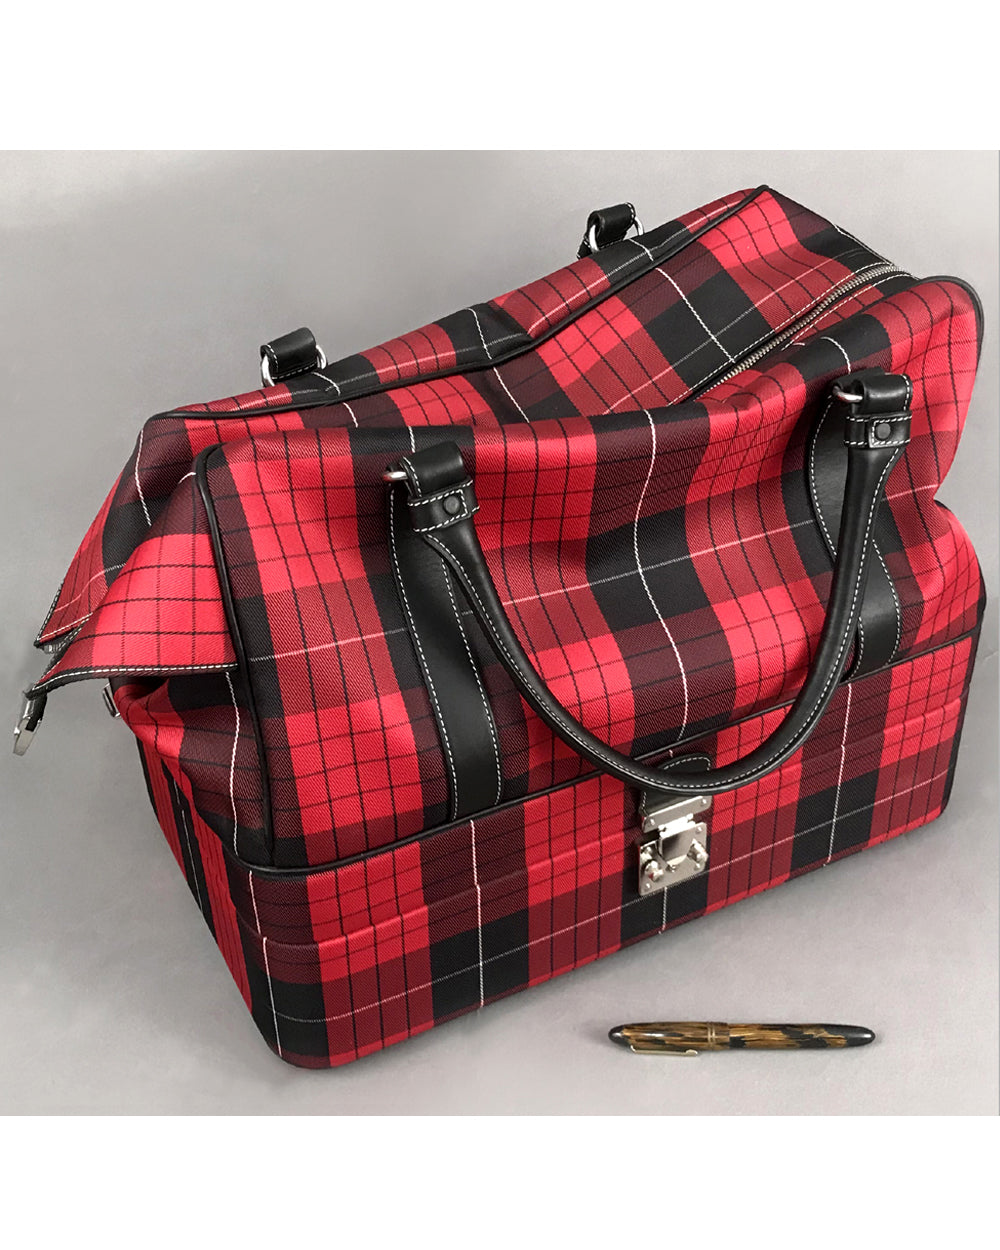 Porsche Factory Luggage - train makeup case / duffle bag